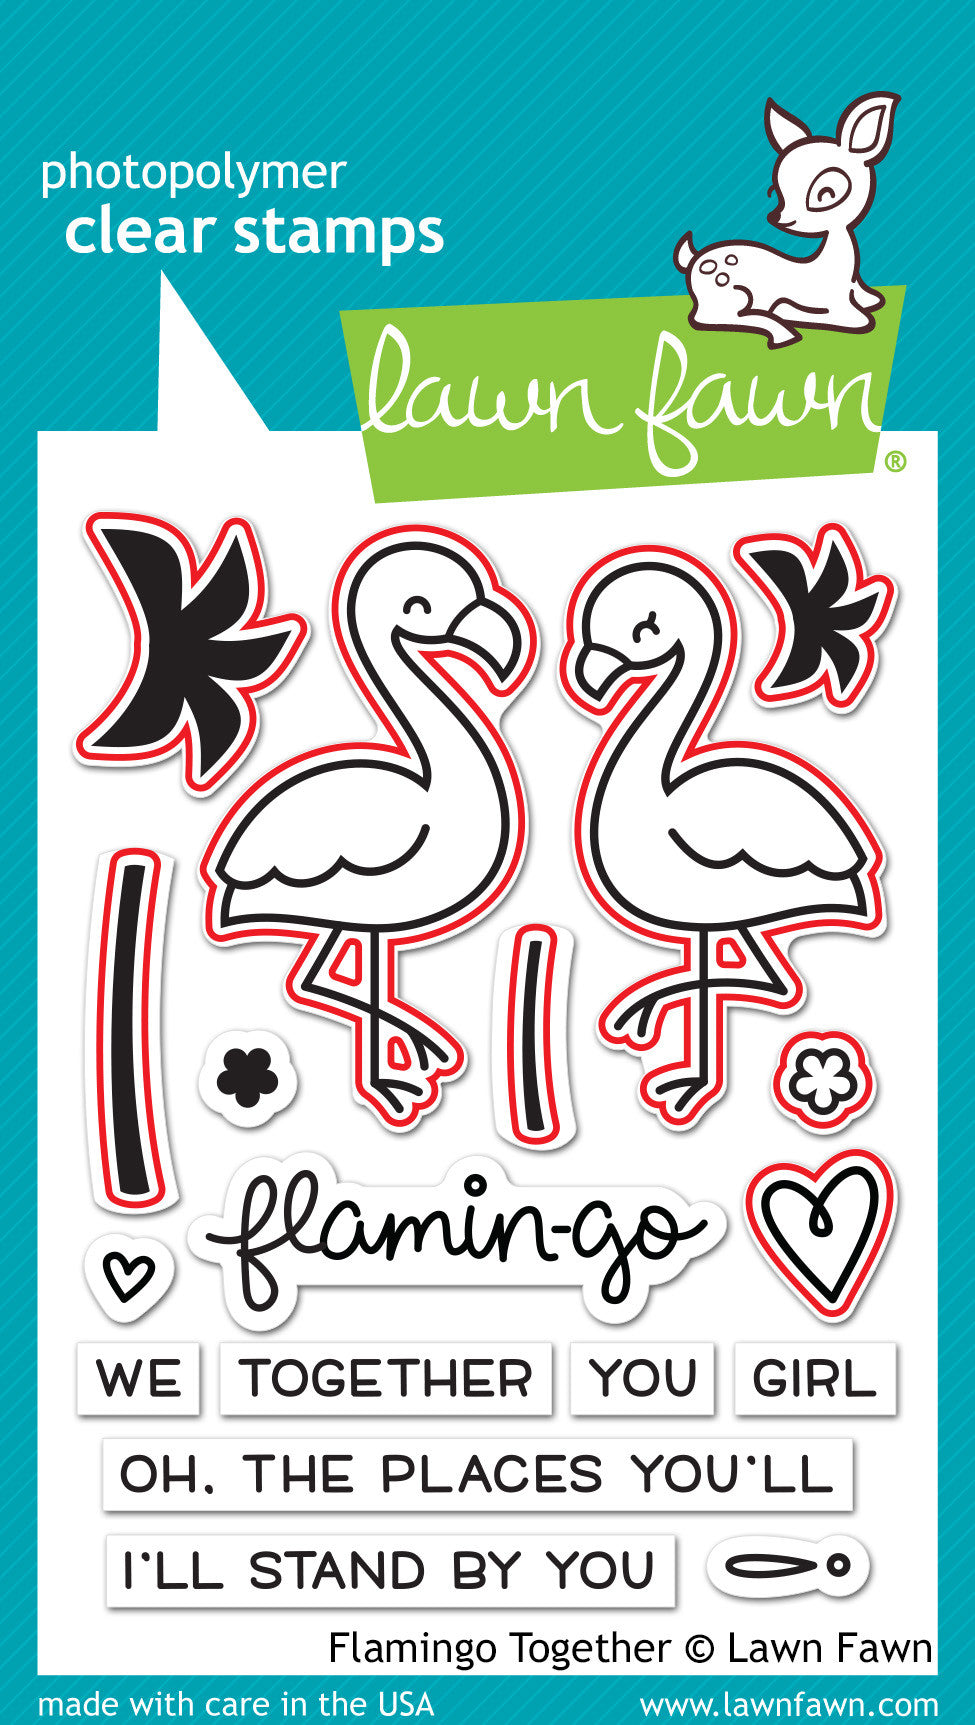 flamingo together - lawn cuts